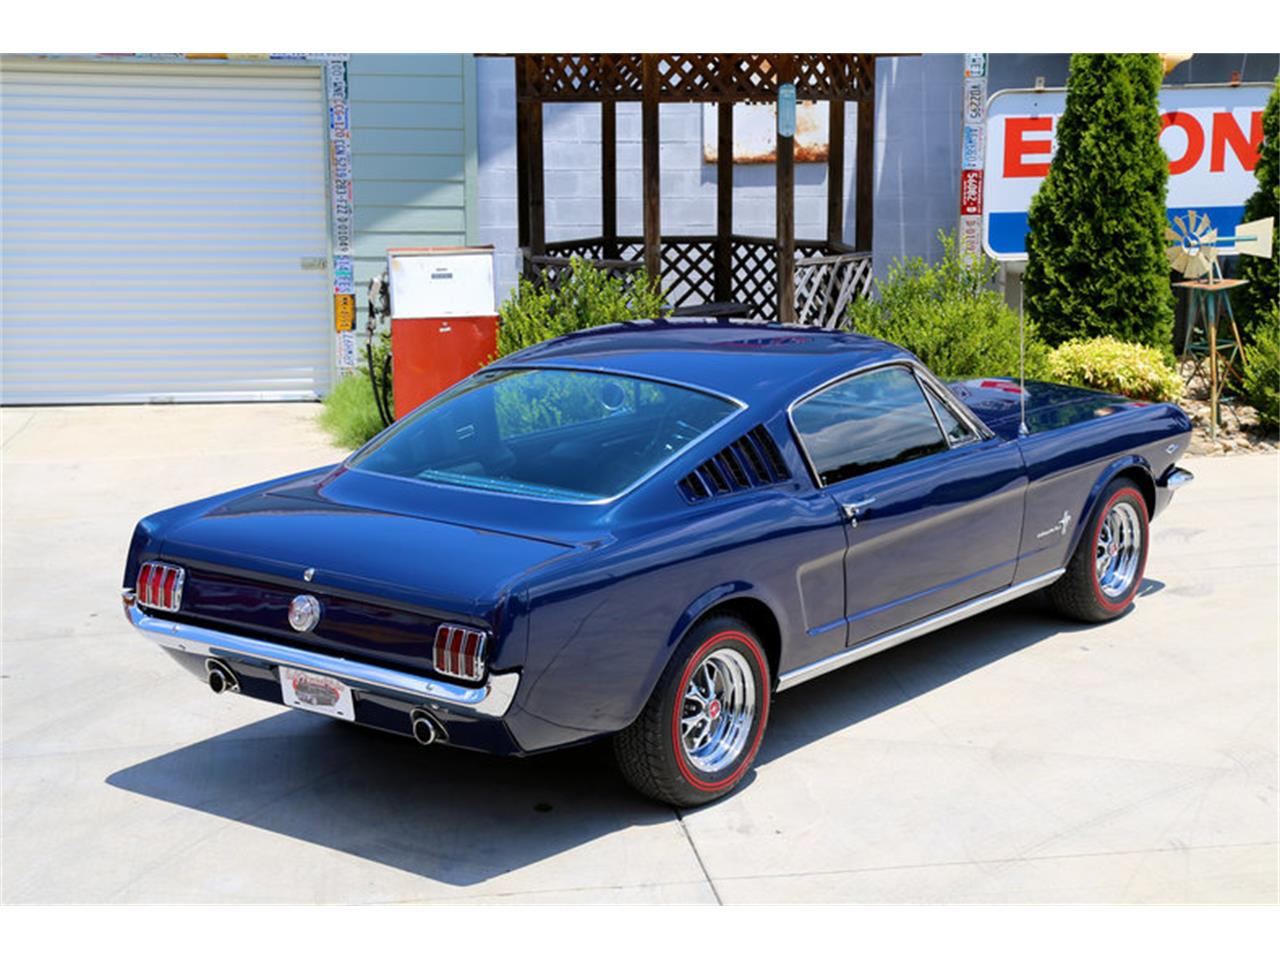 Large Picture of Classic 1966 Mustang located in Tennessee - $44,995.00 - LDLT